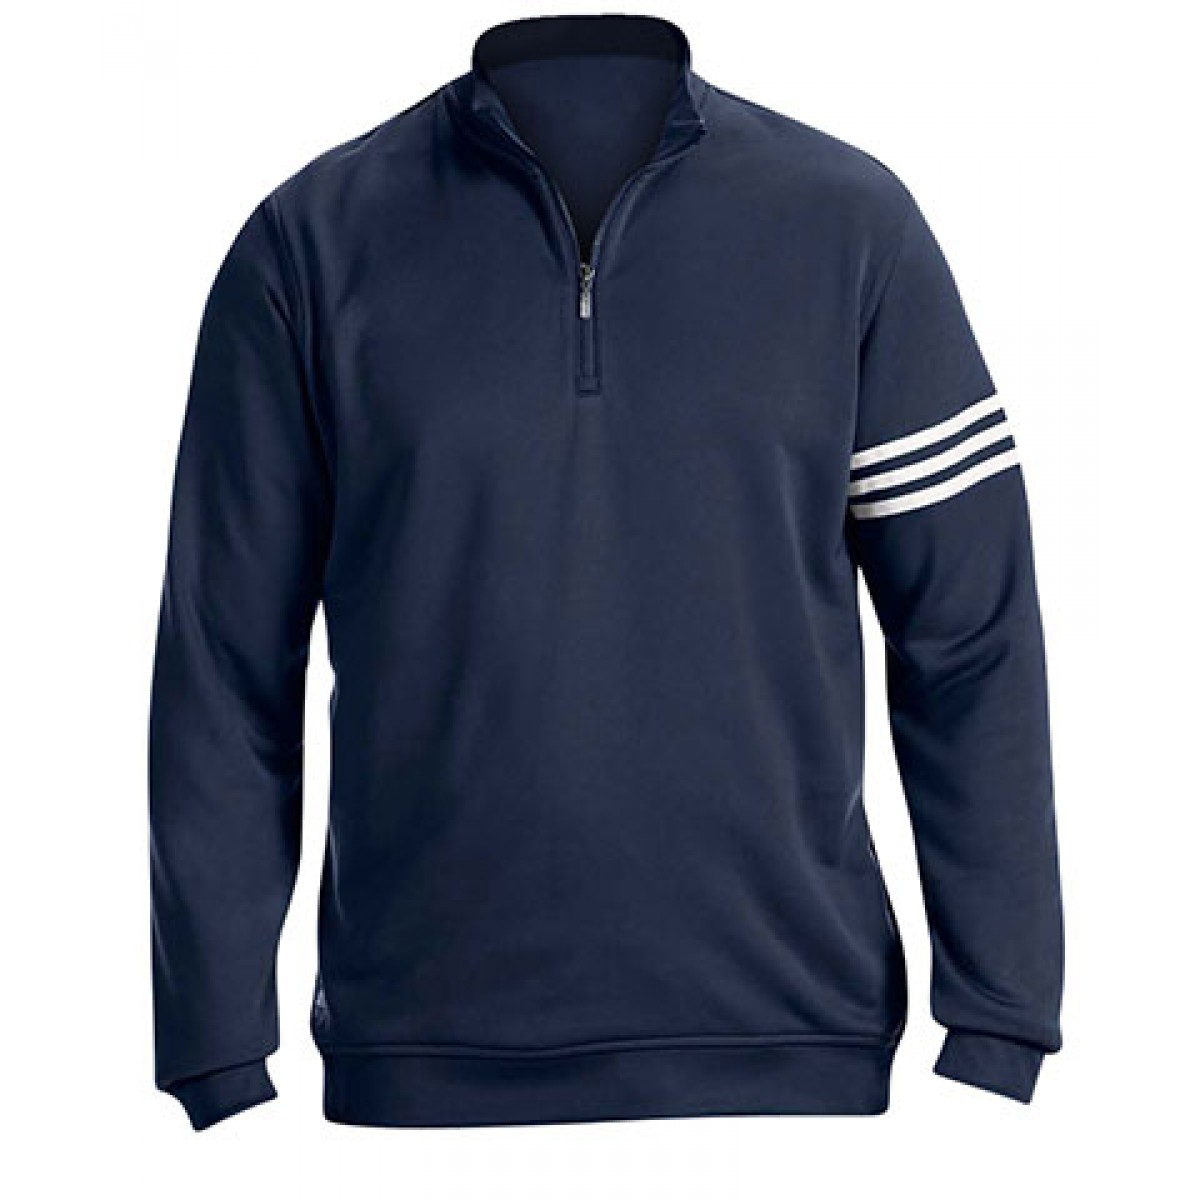 Adidas Men's 3-Stripes Pullover-Navy-L